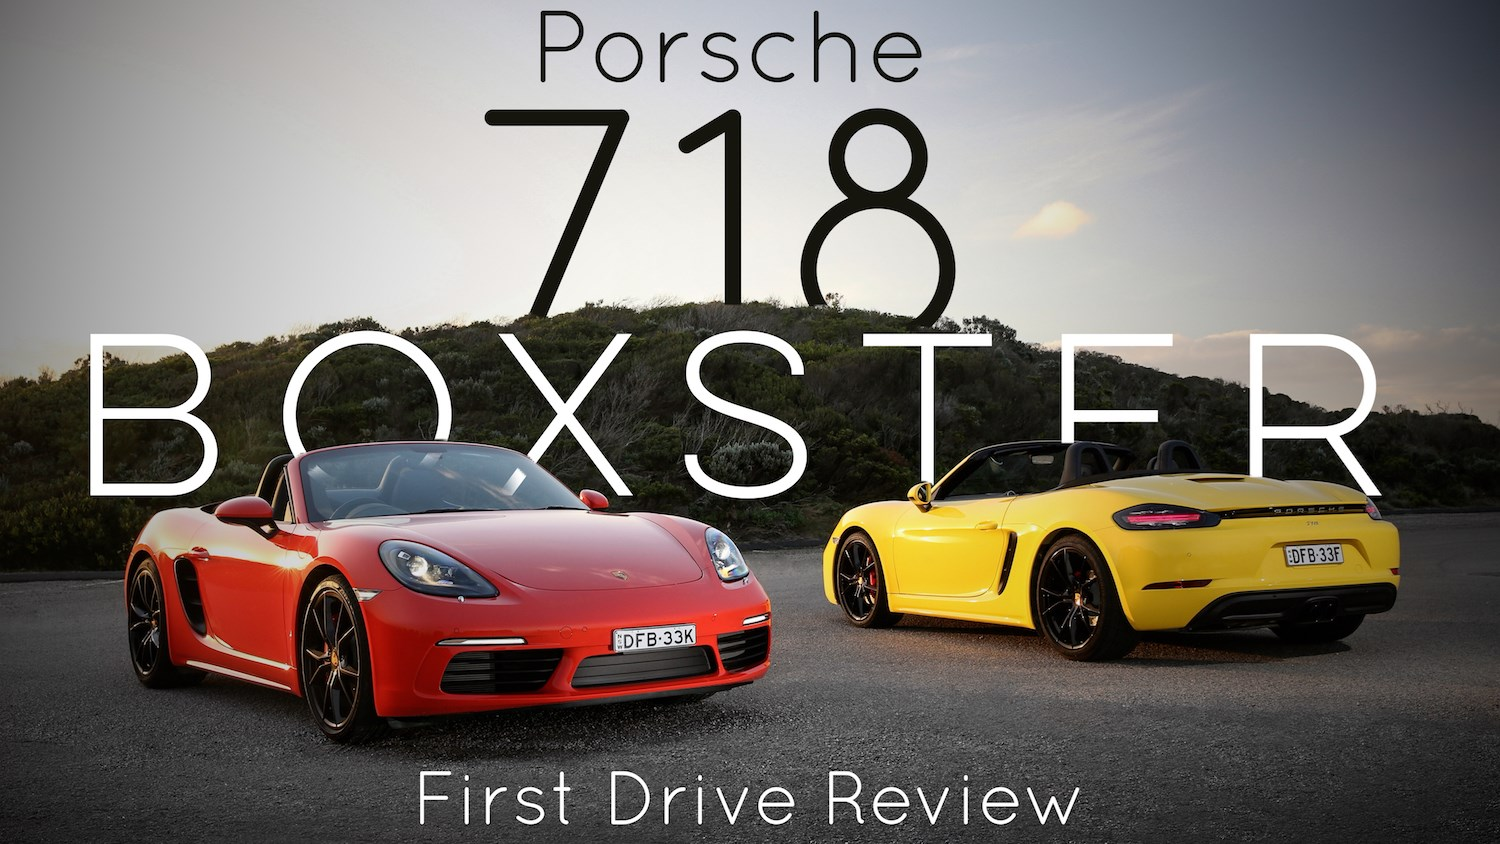 2016 Porsche 718 Boxster - First Drive Review